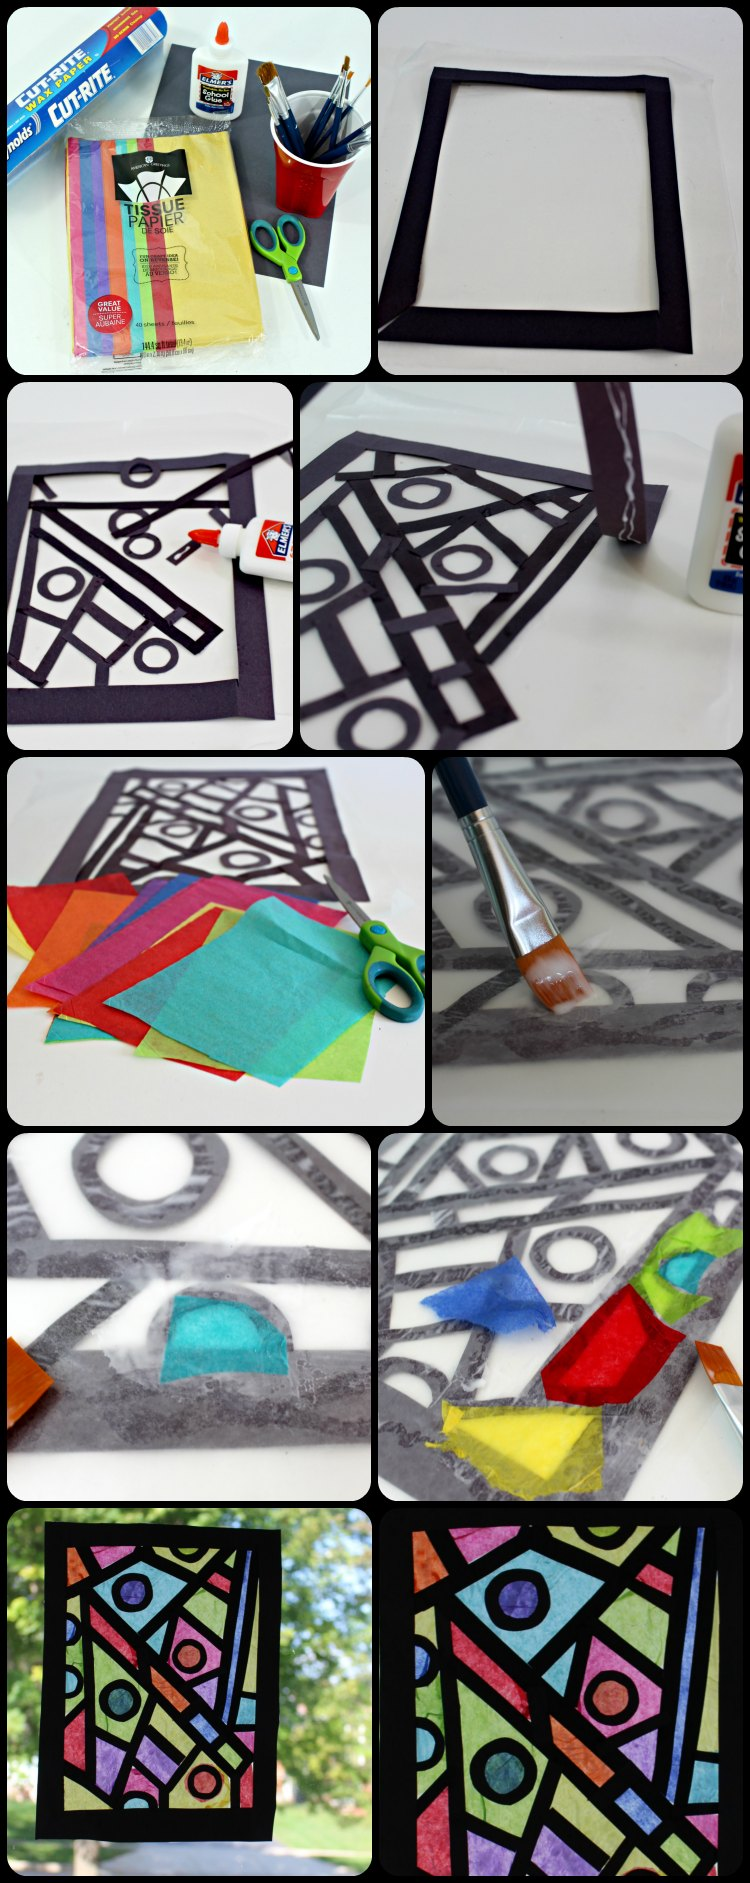 Look These Tips : How to Make a art projects like stained glass window